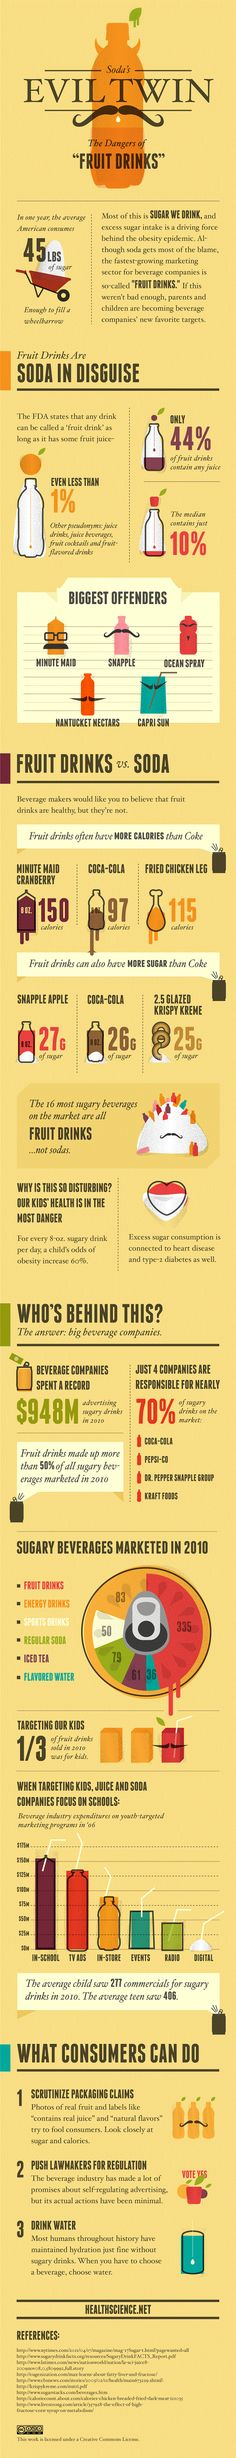 Soda's Evil Twin: Fruit Drinks. Why they're just as bad or worse than soda.